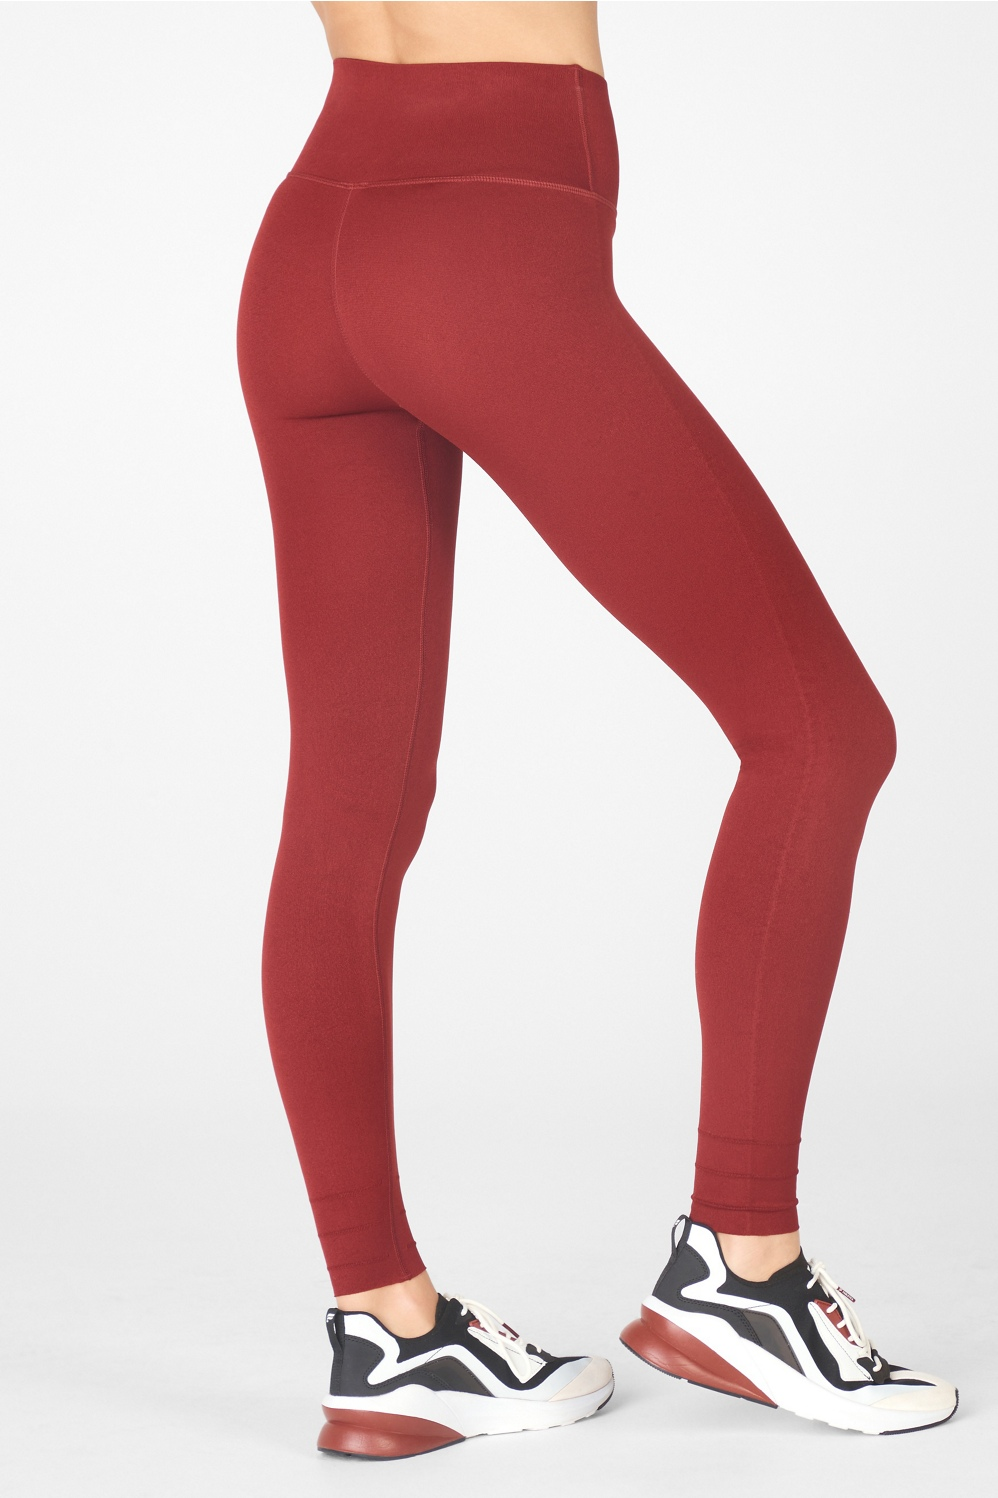 High-waist Essential Leggings with Zippered Side Pockets Yoga Pants S,M,L